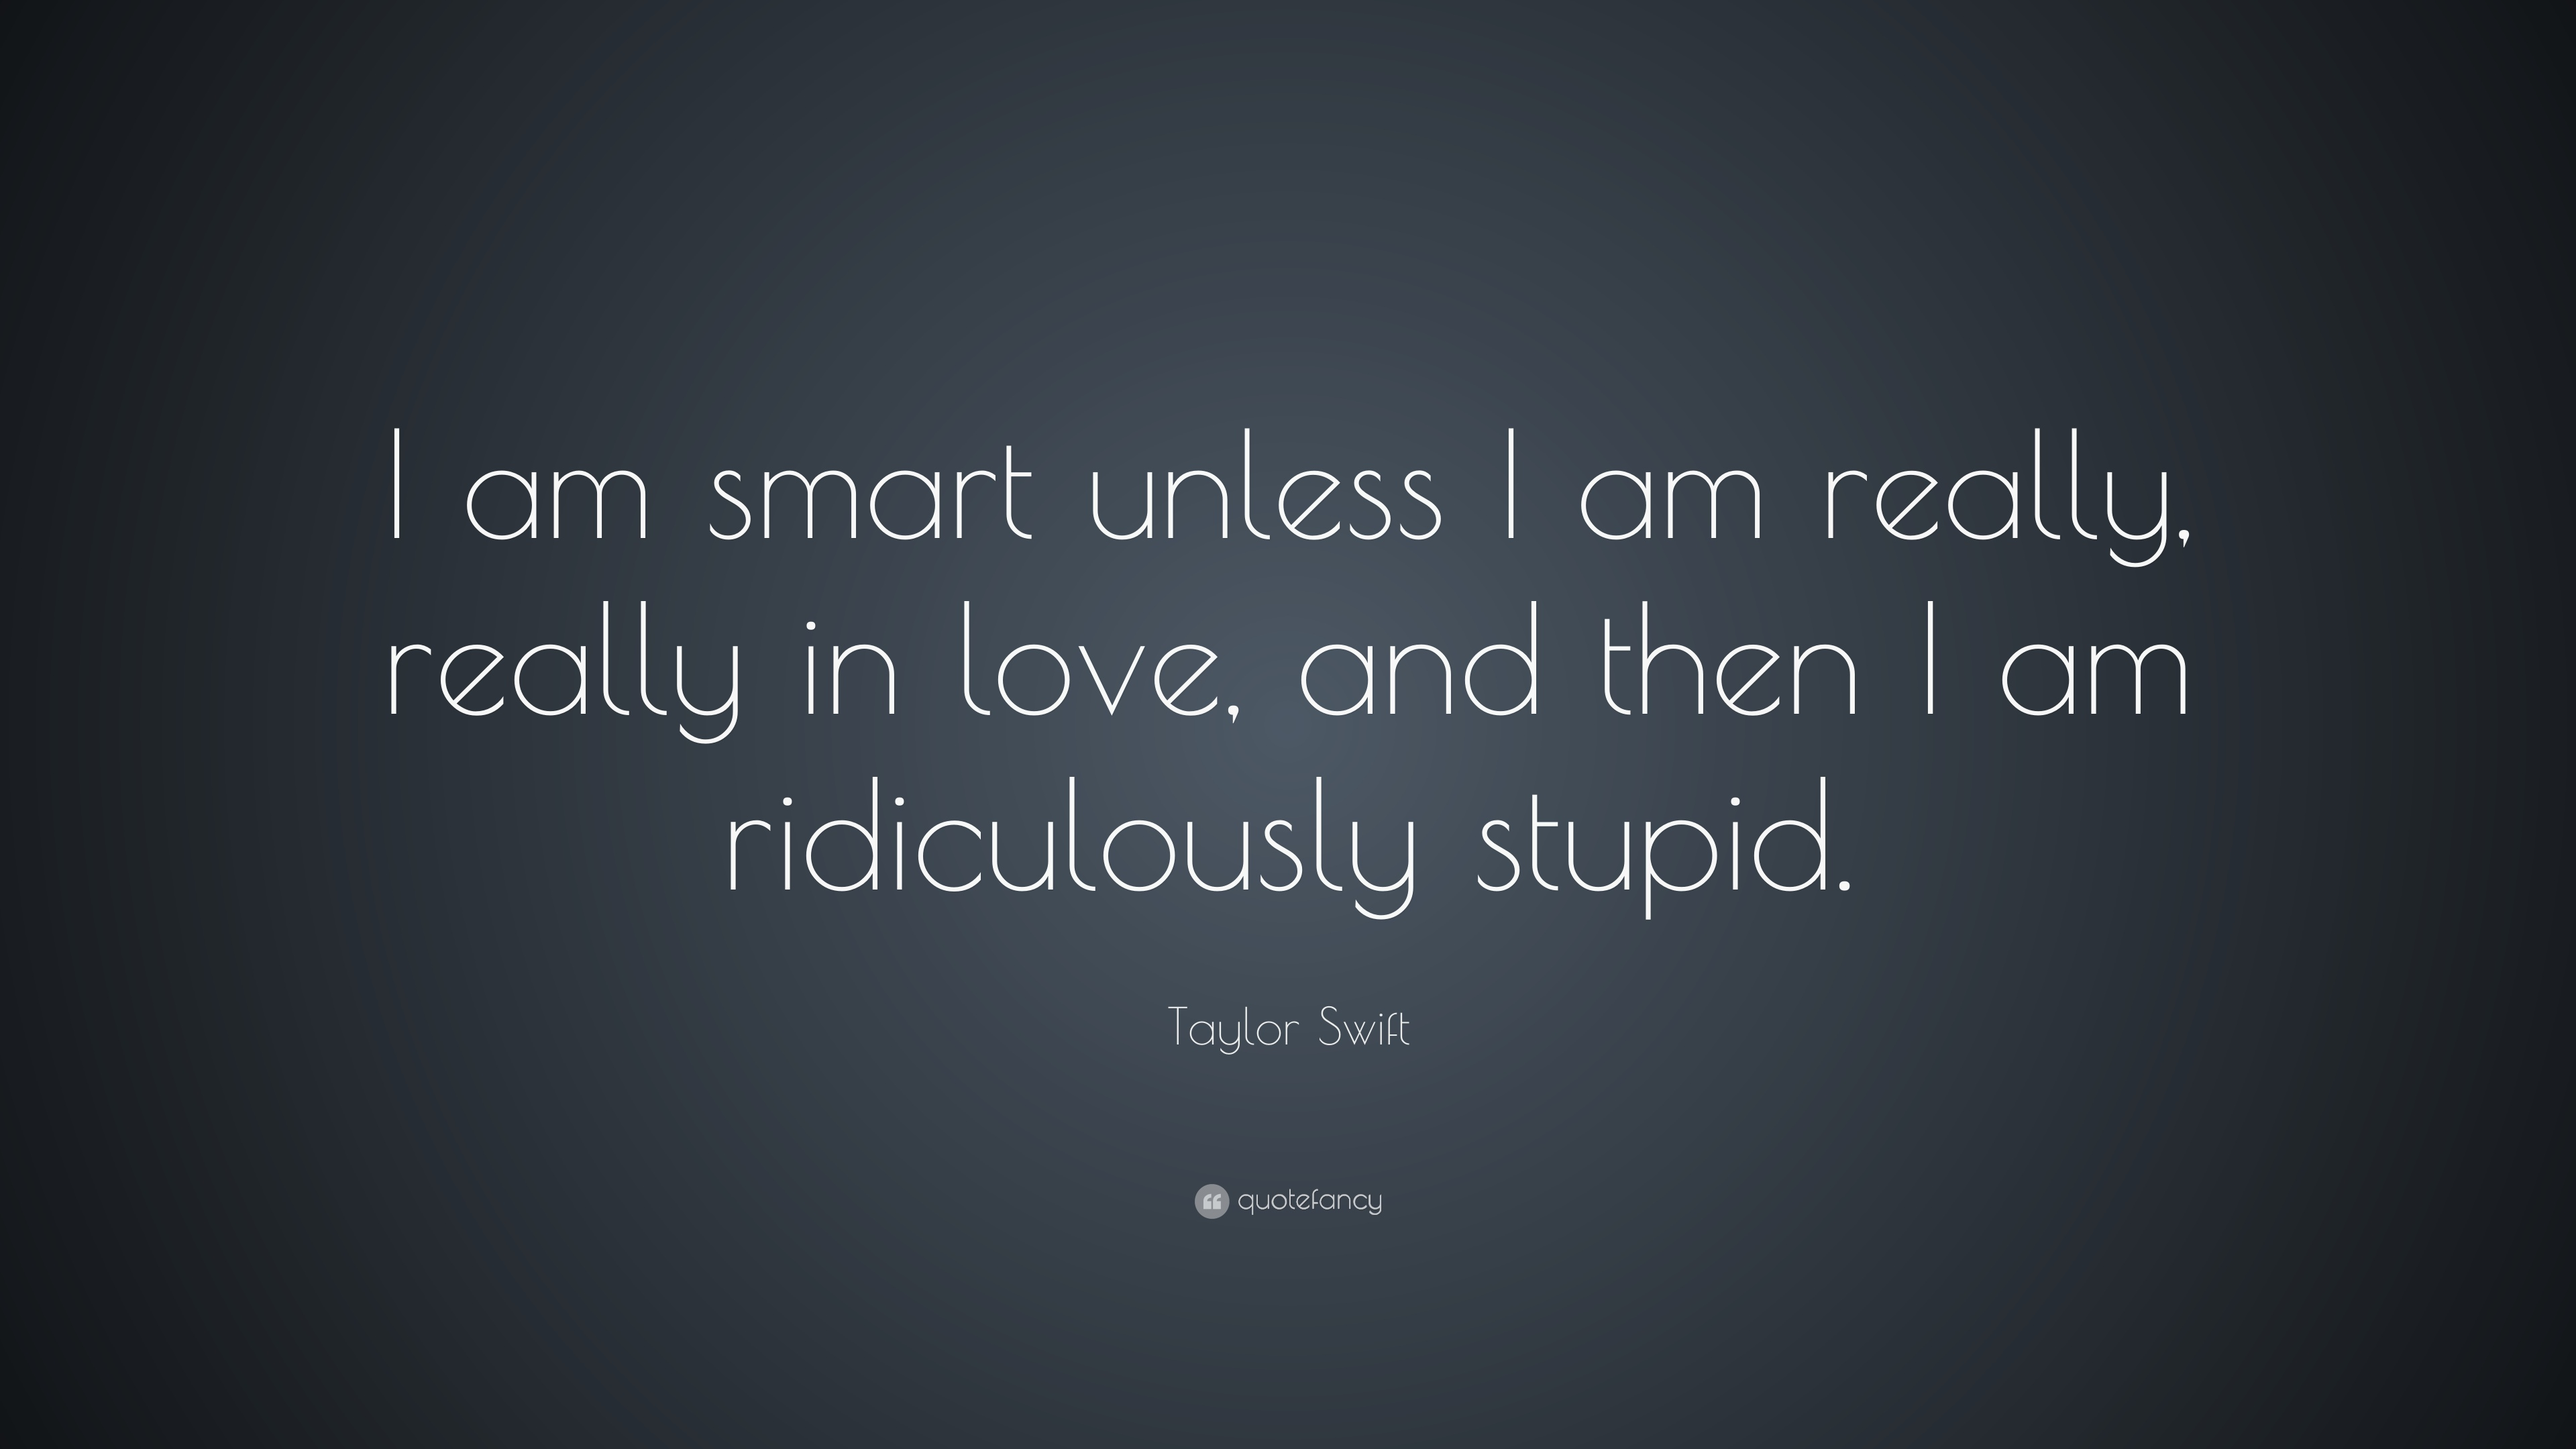 Taylor Swift Quote I Am Smart Unless I Am Really Really In Love